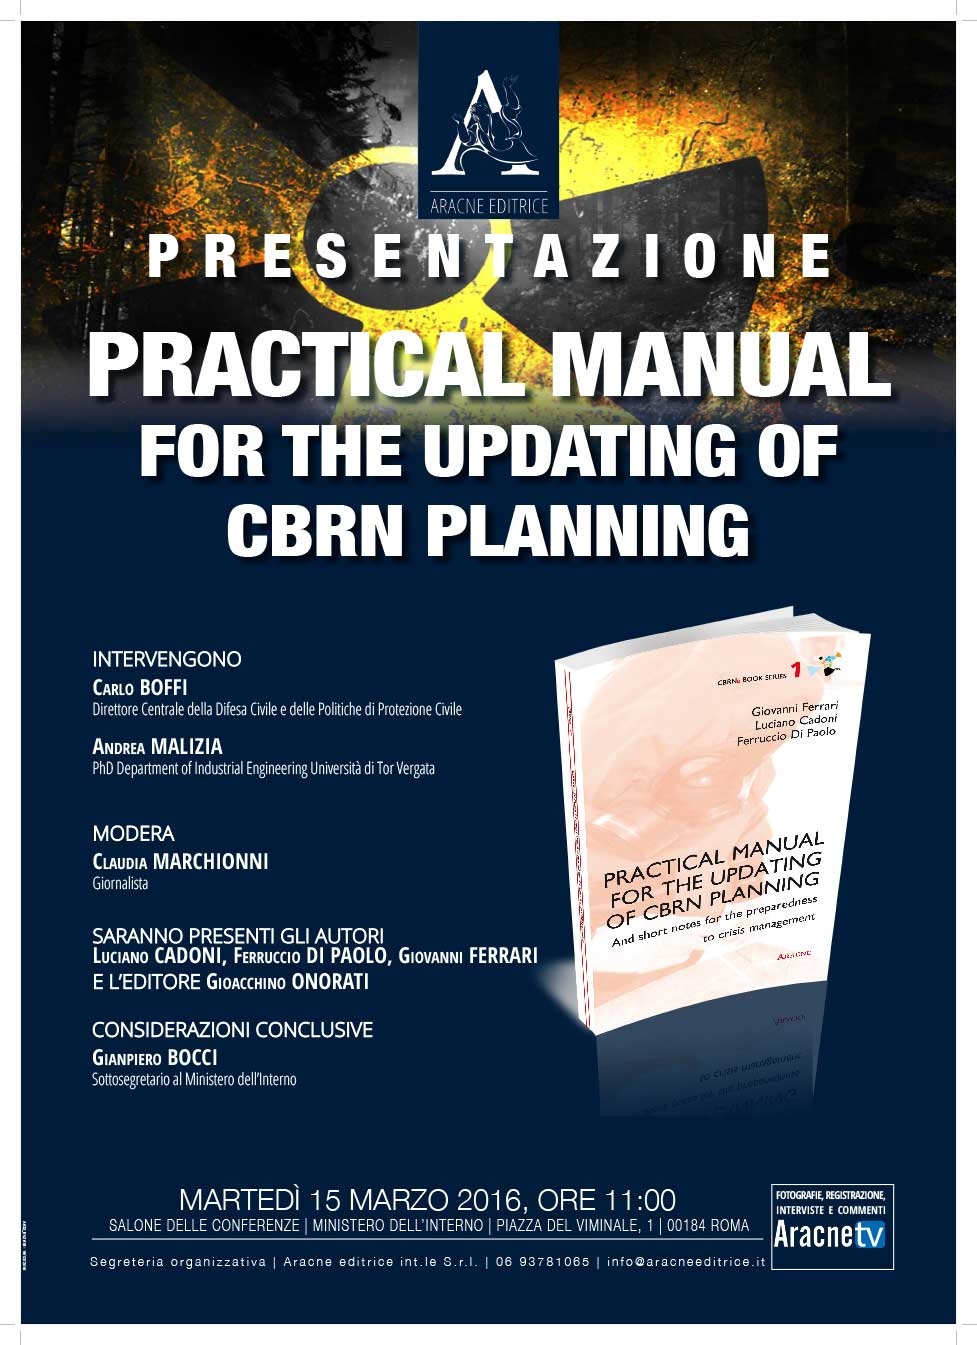 Presentazione - Practical manual for the updating of CBRN planning